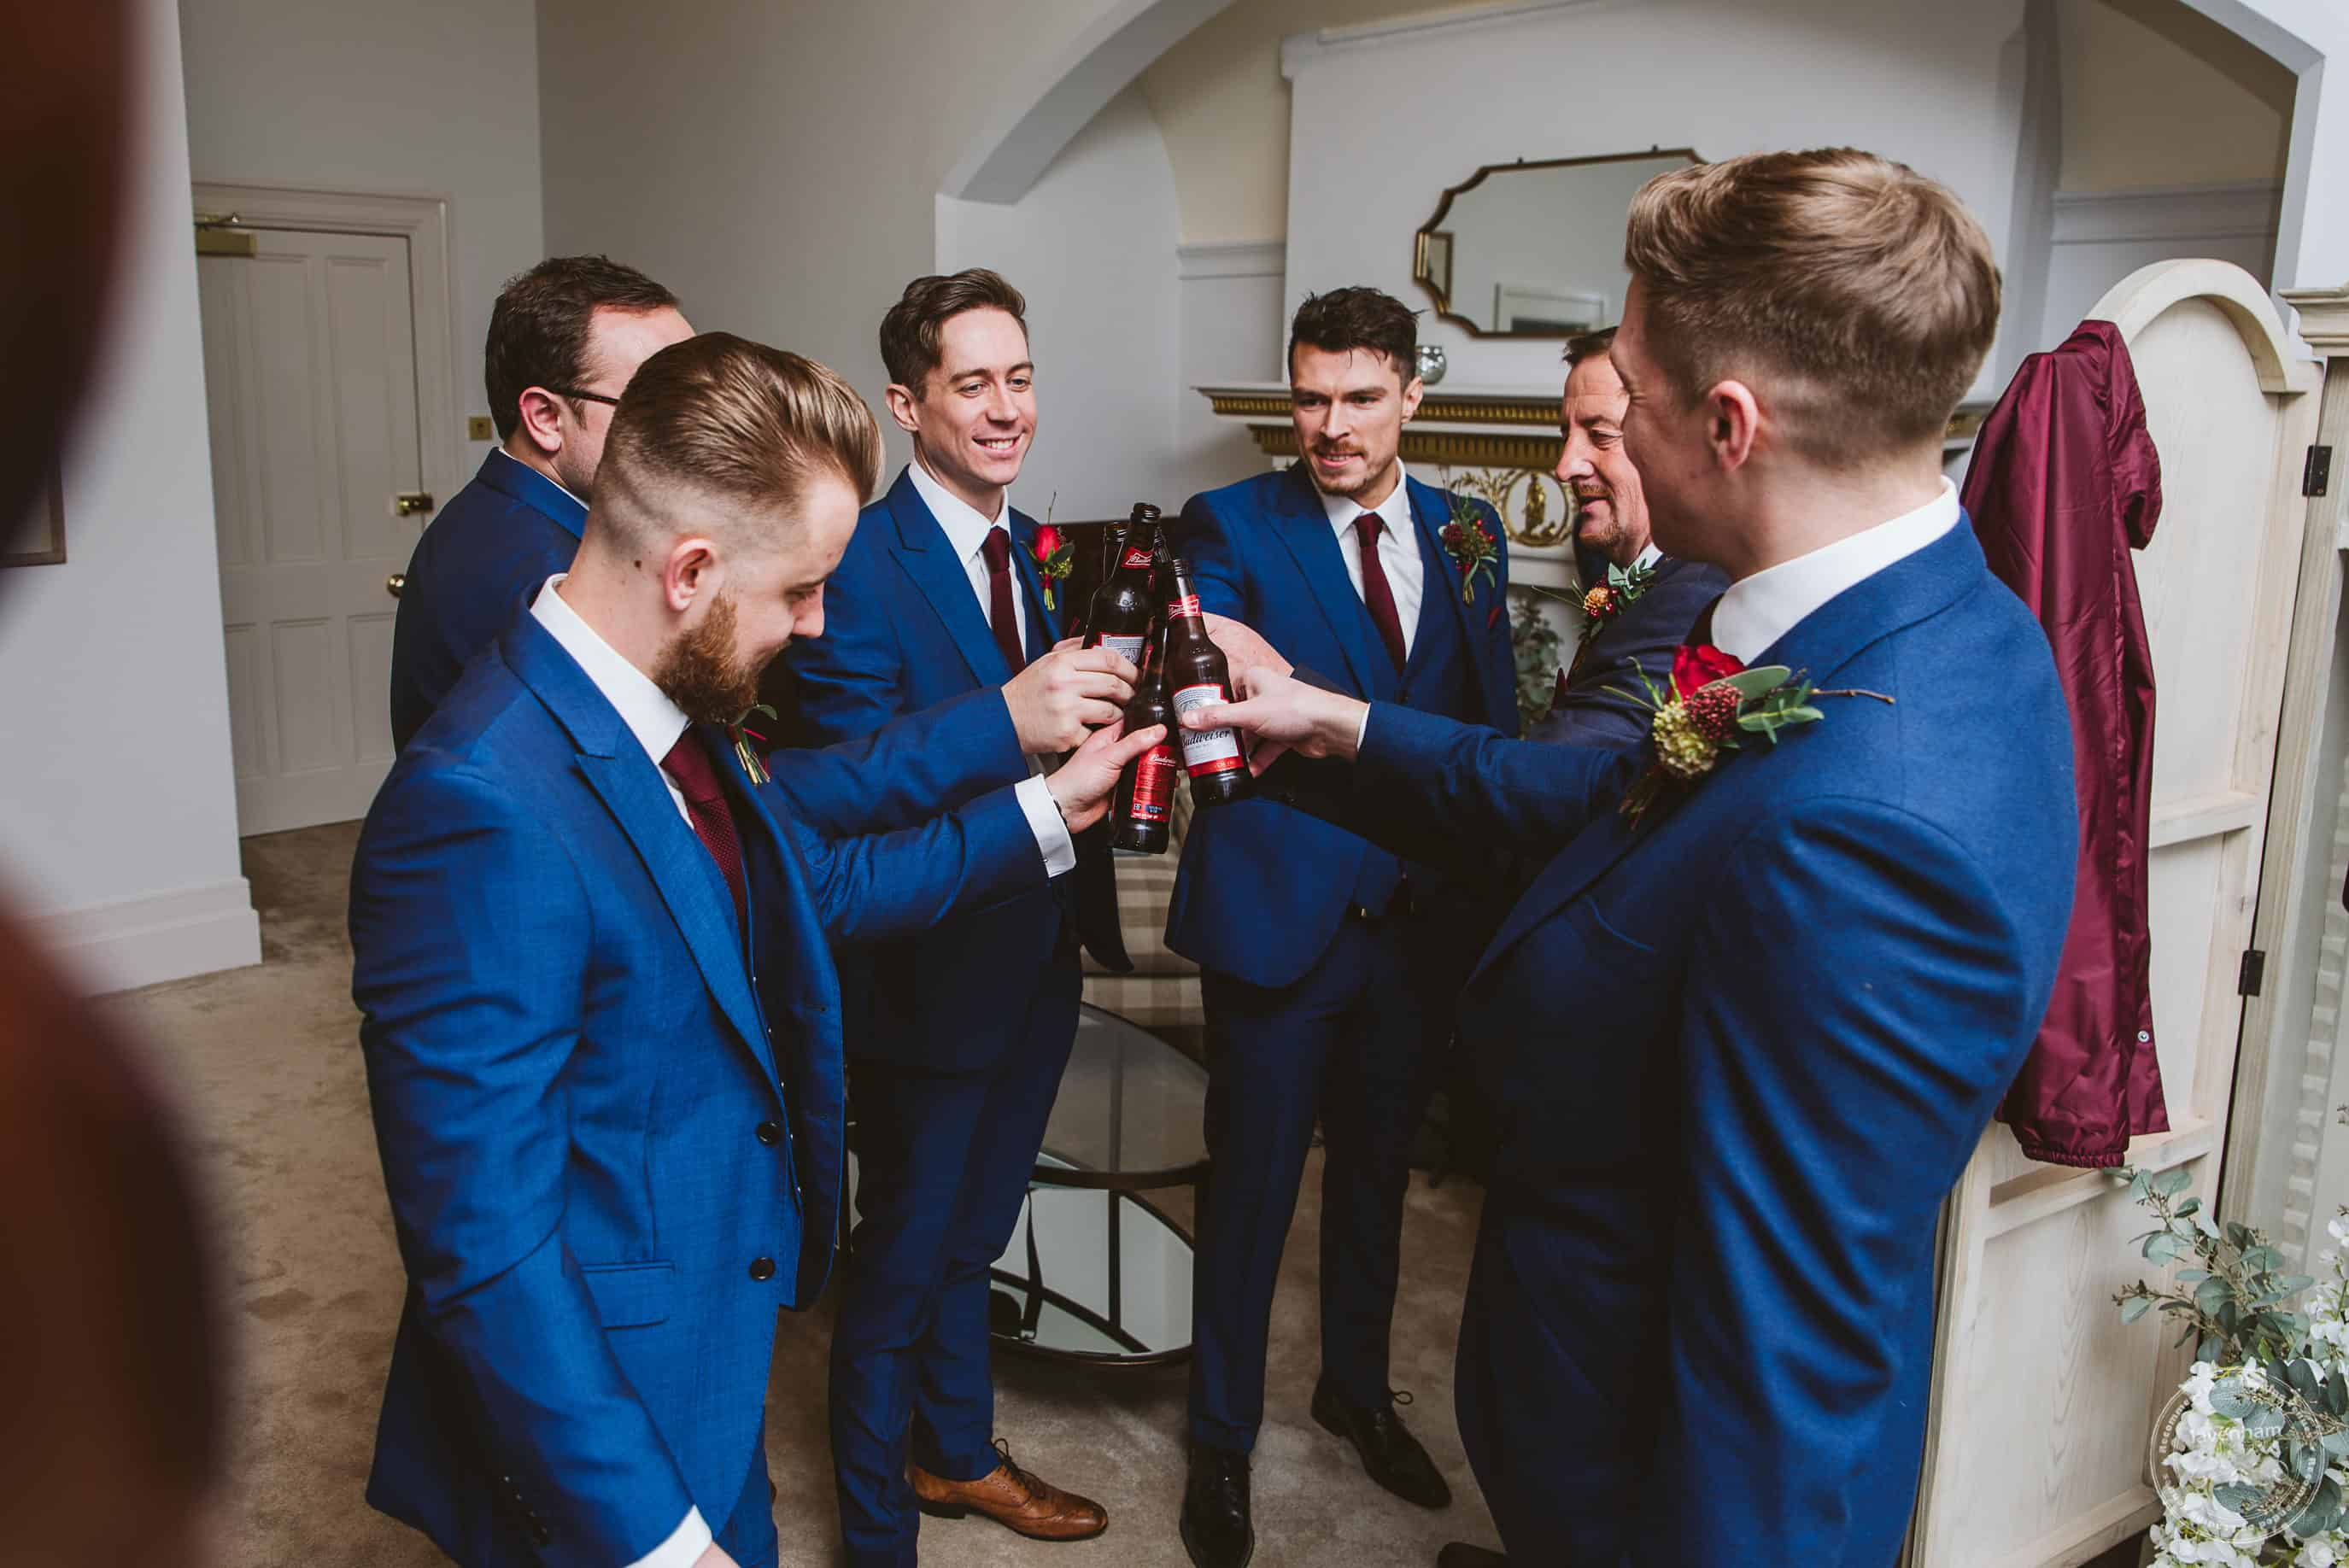 301119 Holmewood Hall Wedding Photographer 024